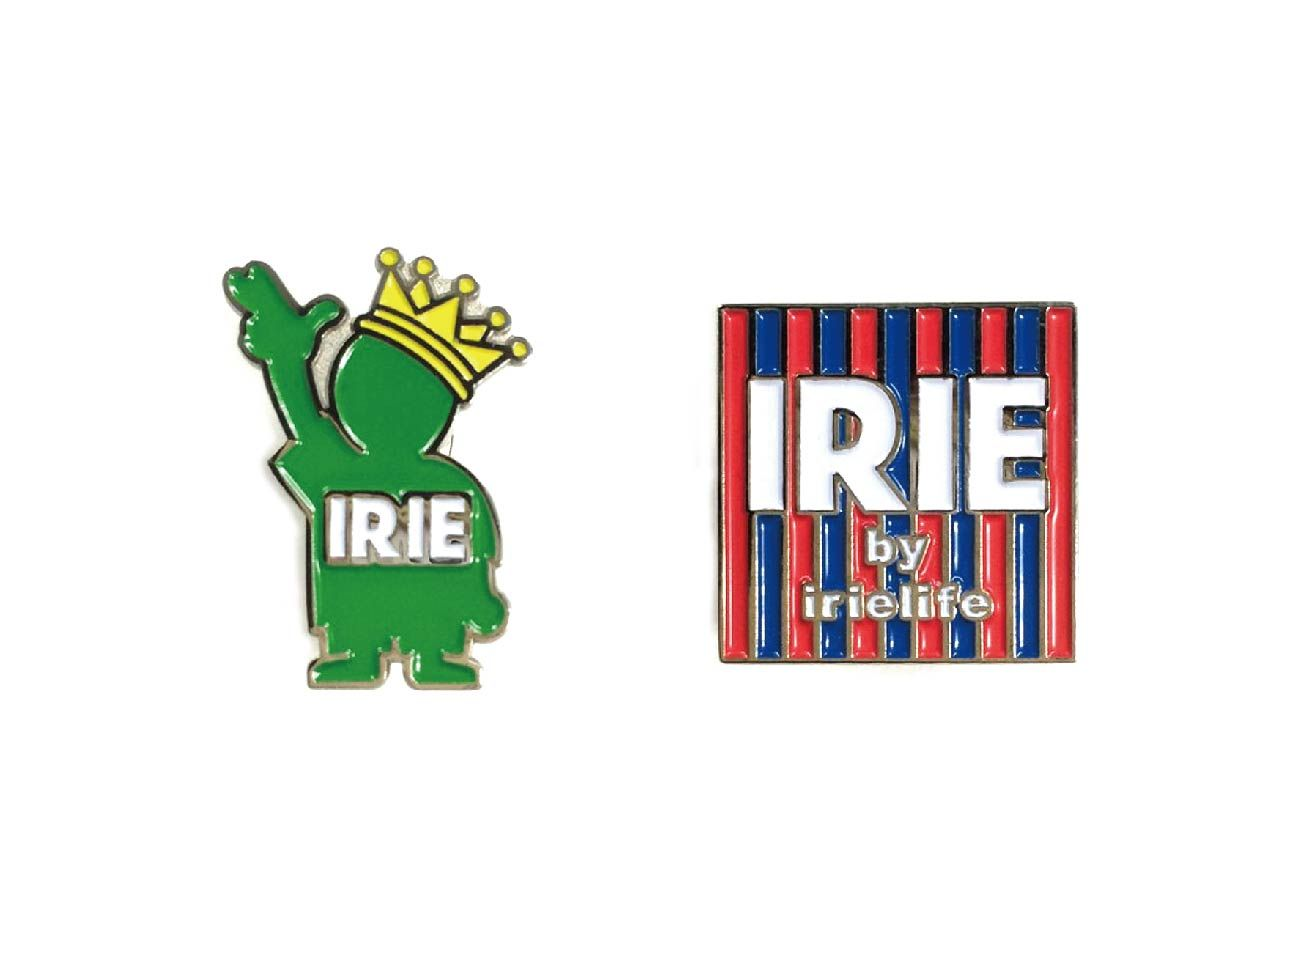 【70%OFF】IRIE PIN BADGE -IRIE by irielife-